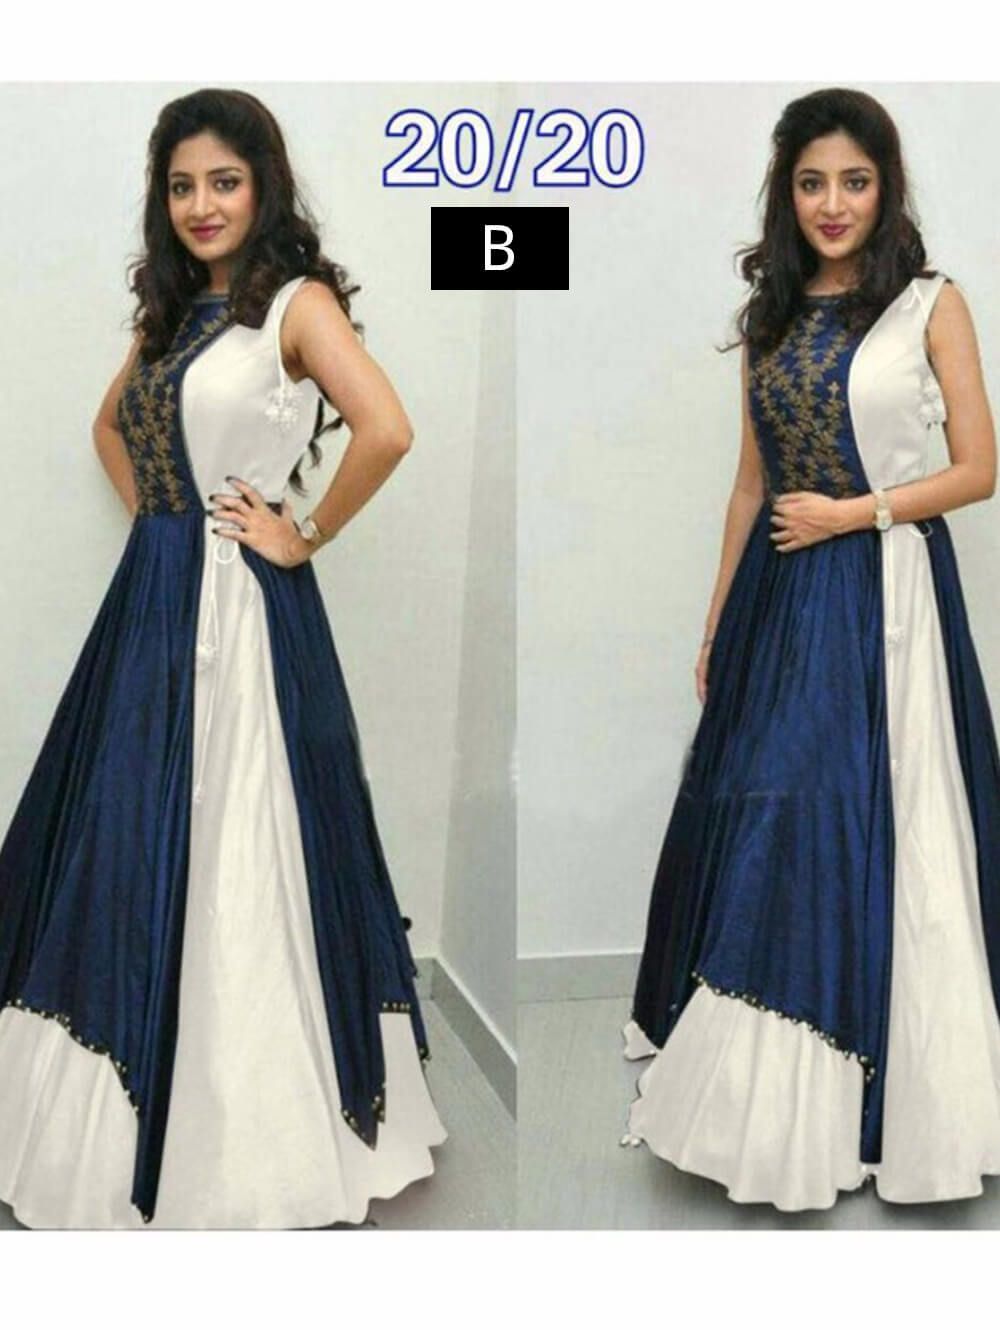 2020B Off White Designer Banglory Stitched Gown